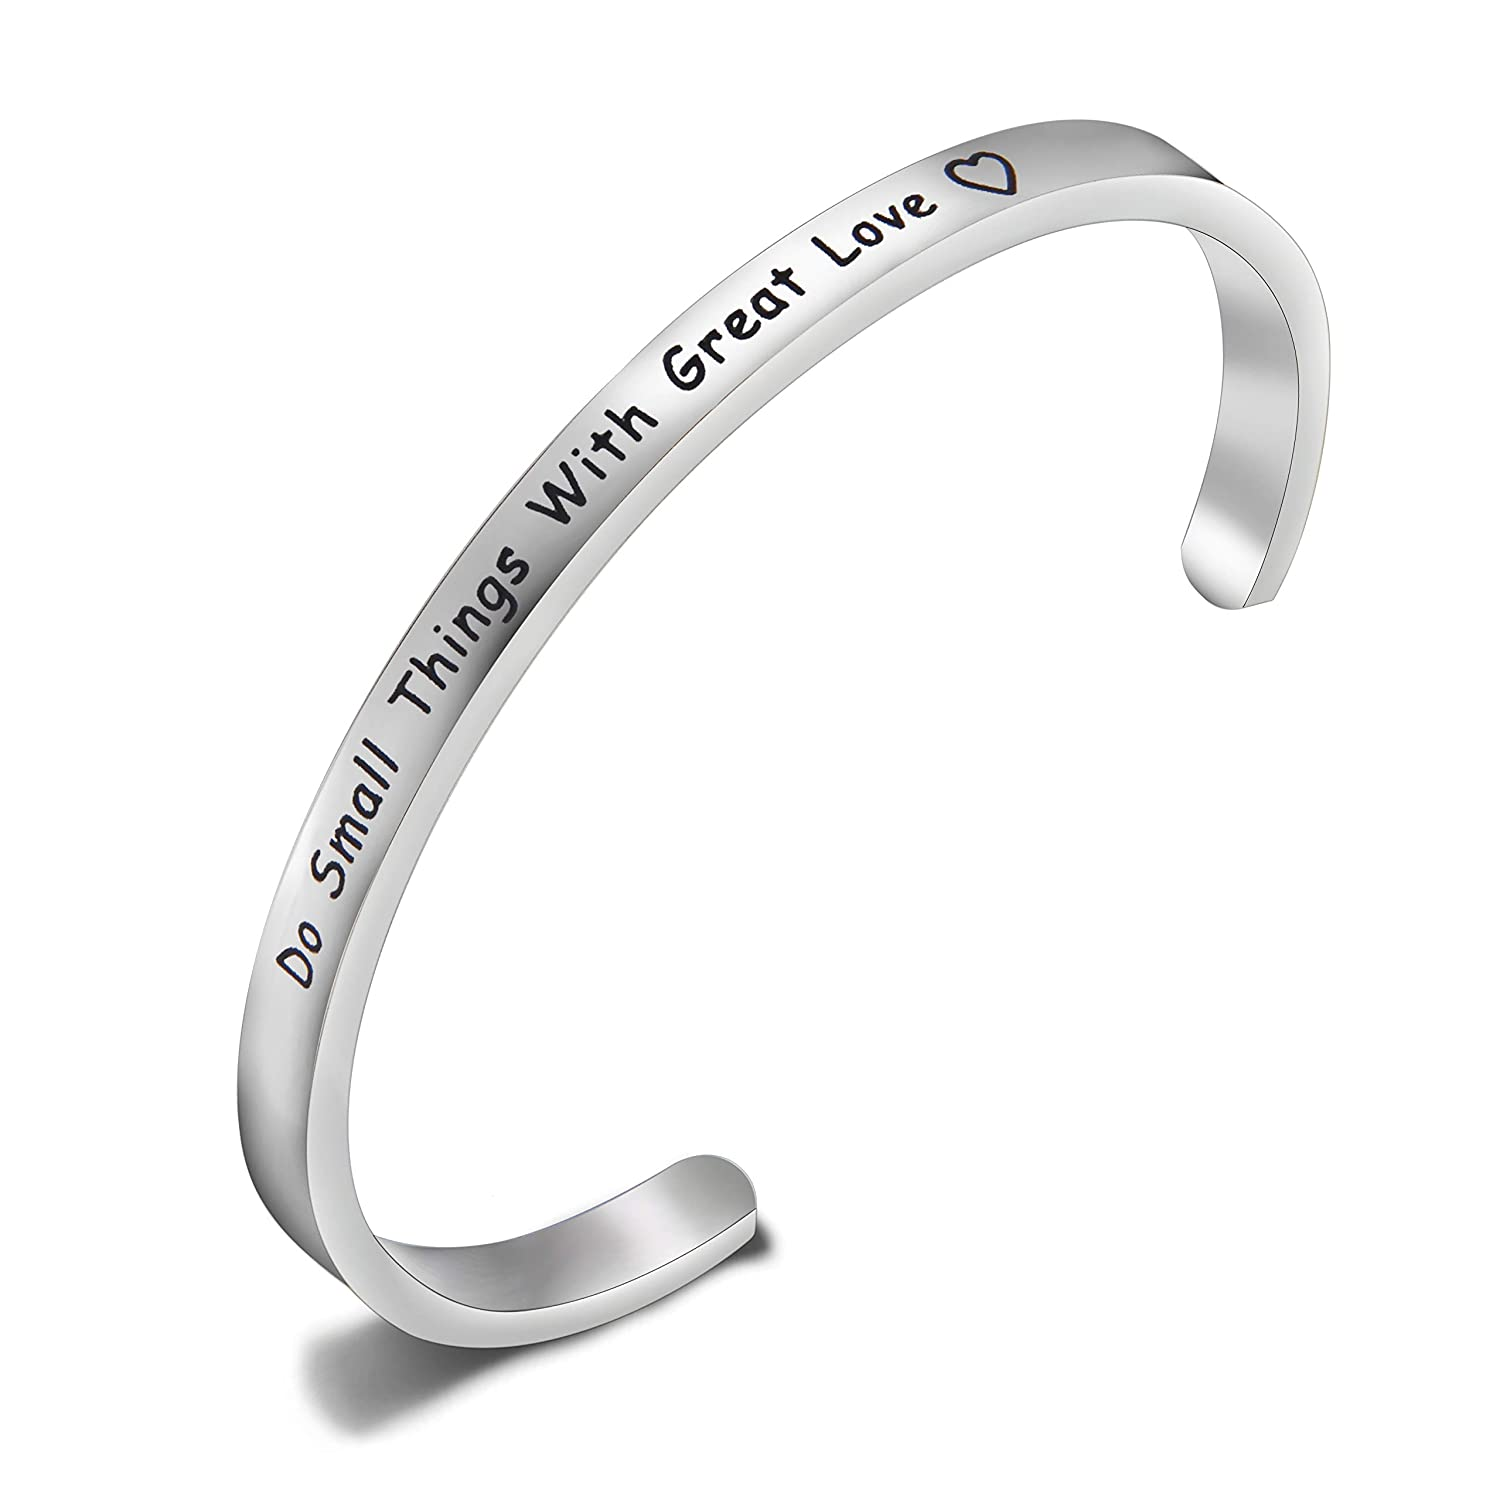 MAOFAED Religious Jewelry Do Small Things with Great Love Mother Teresa Social Worker Gift Scripture Bracelet Gift for Her